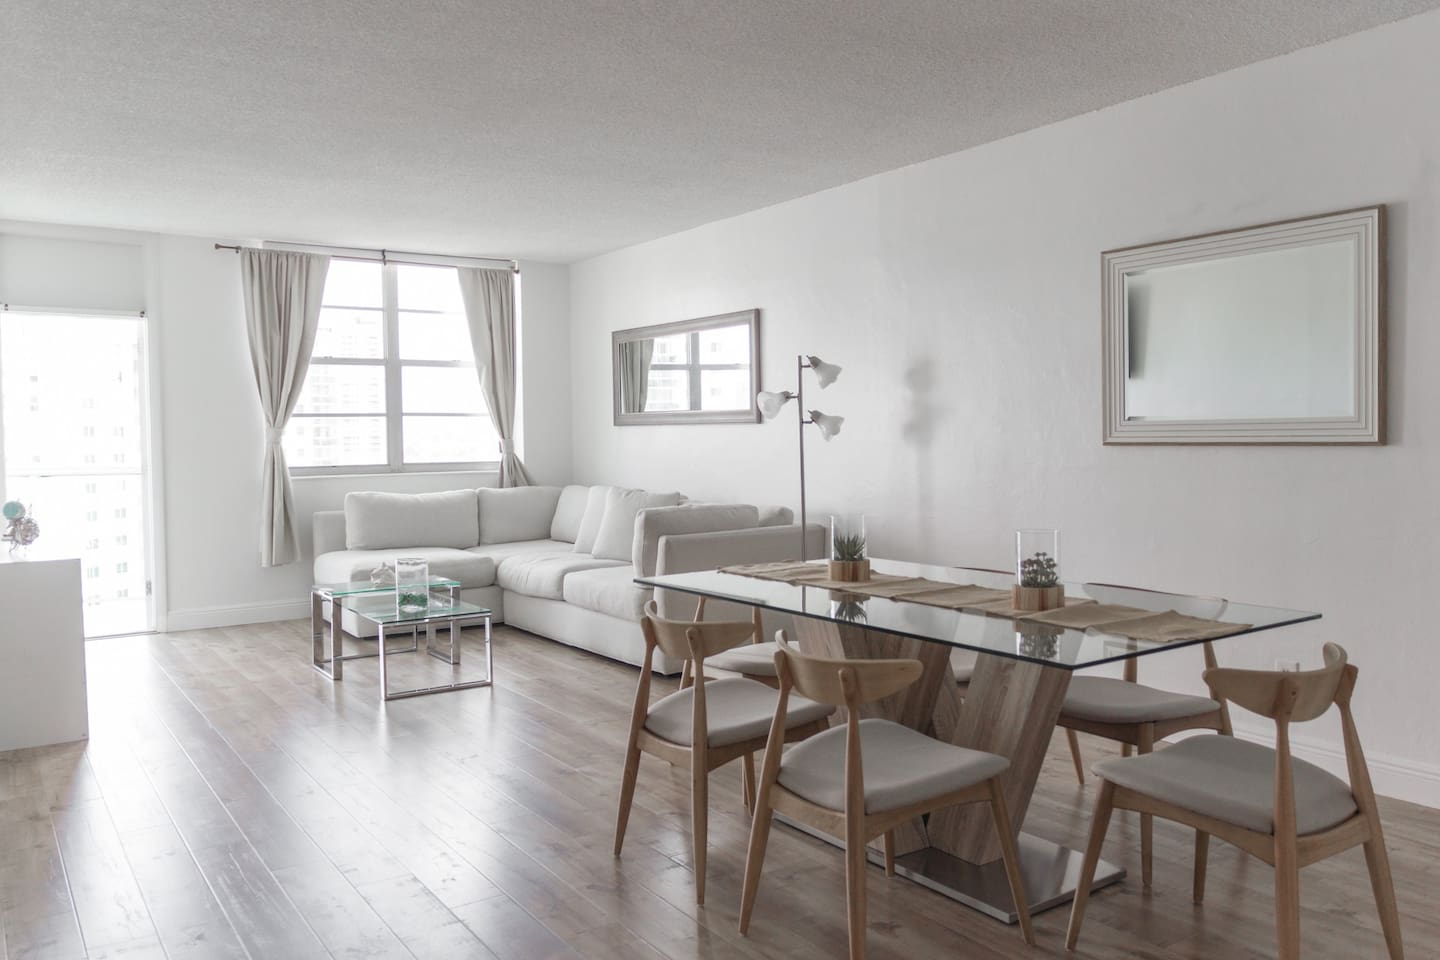 Upgraded property with laminate floors and nice furniture!